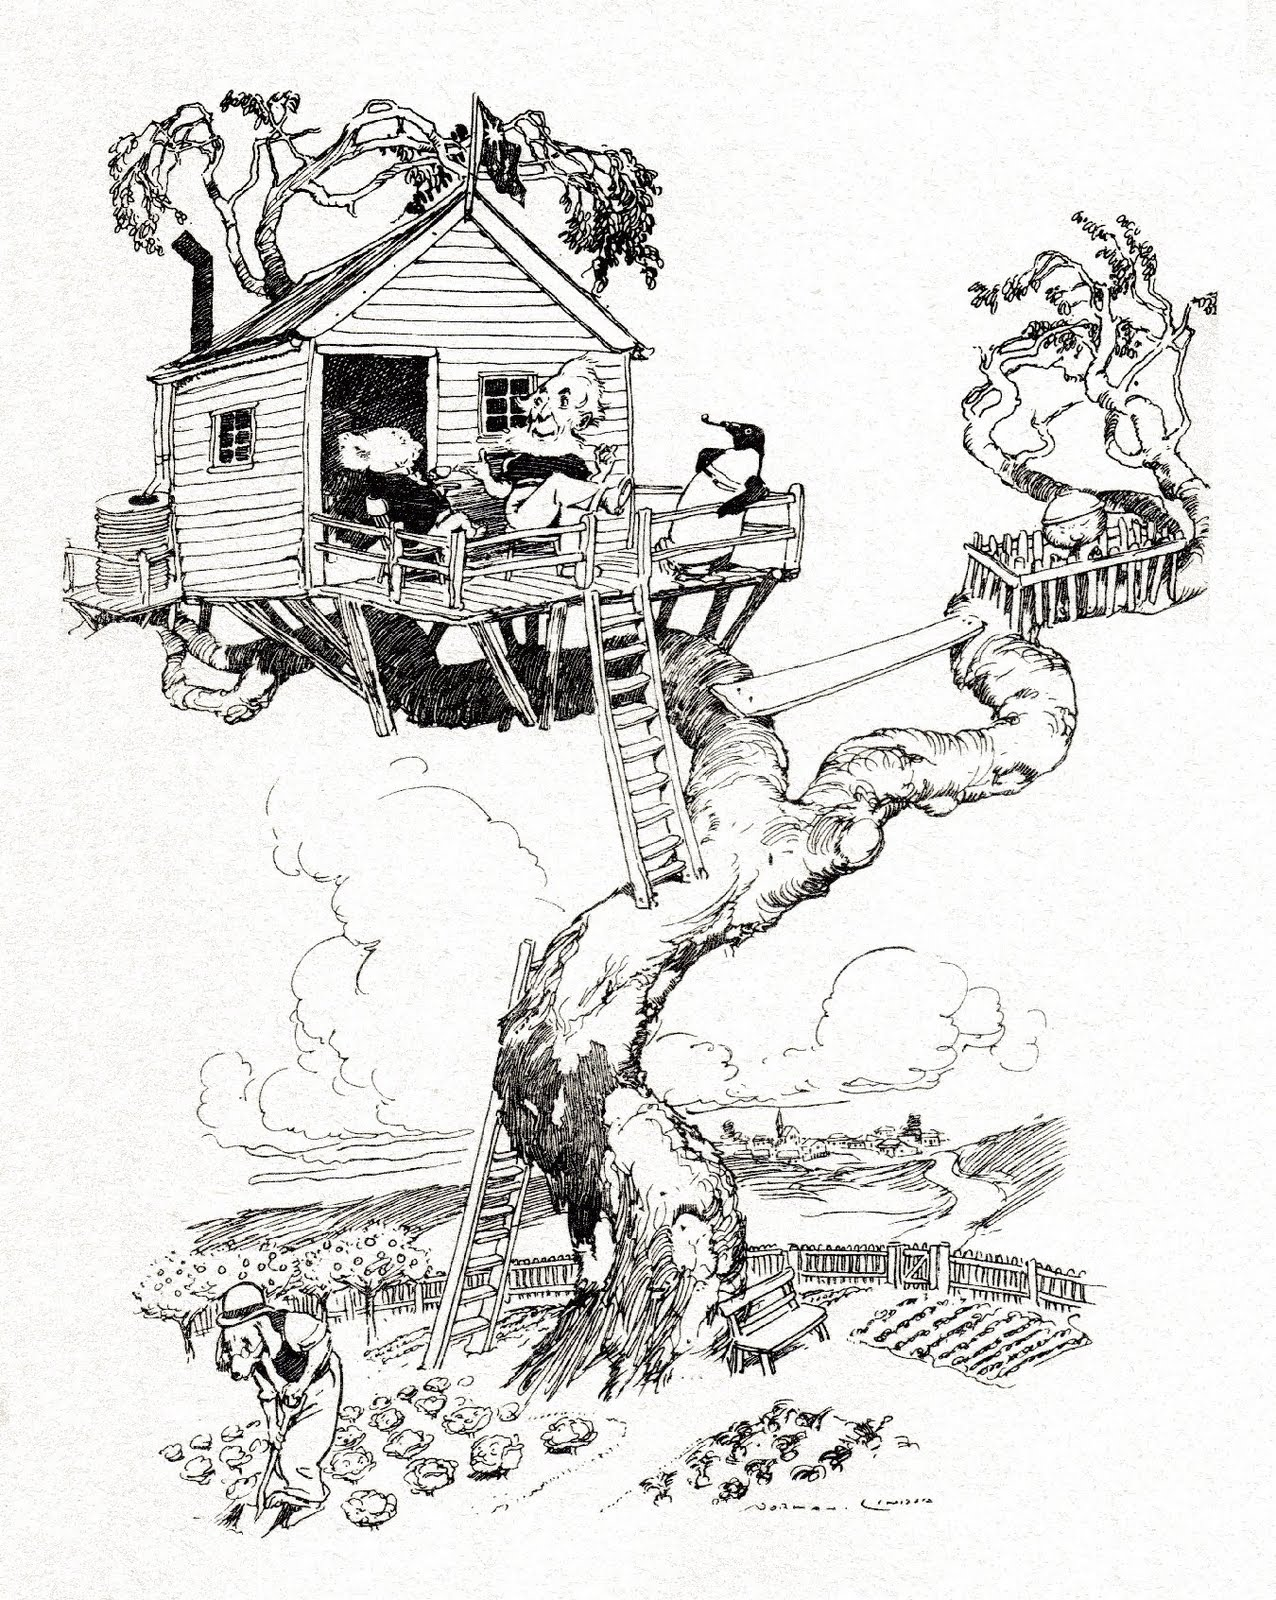 anthropomorphic animals in tree-house (sketch)